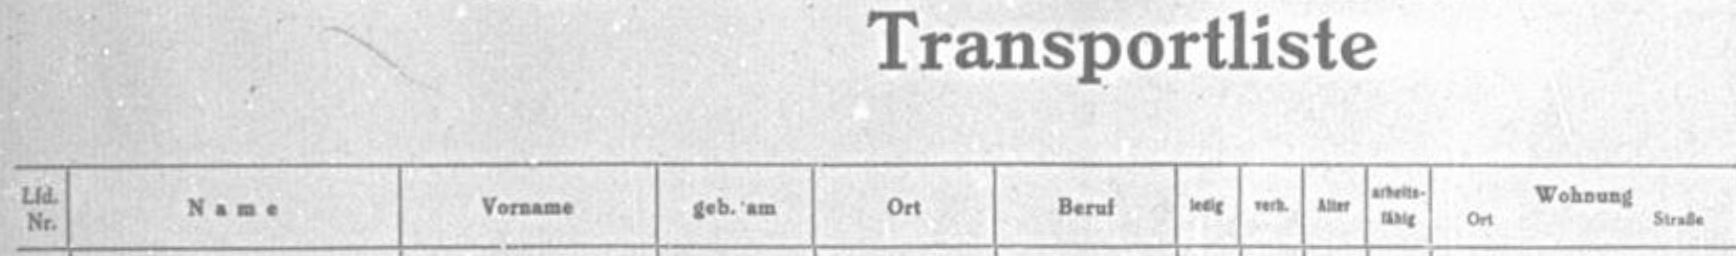 Otto Baer-Transport List 9.12.1942-1